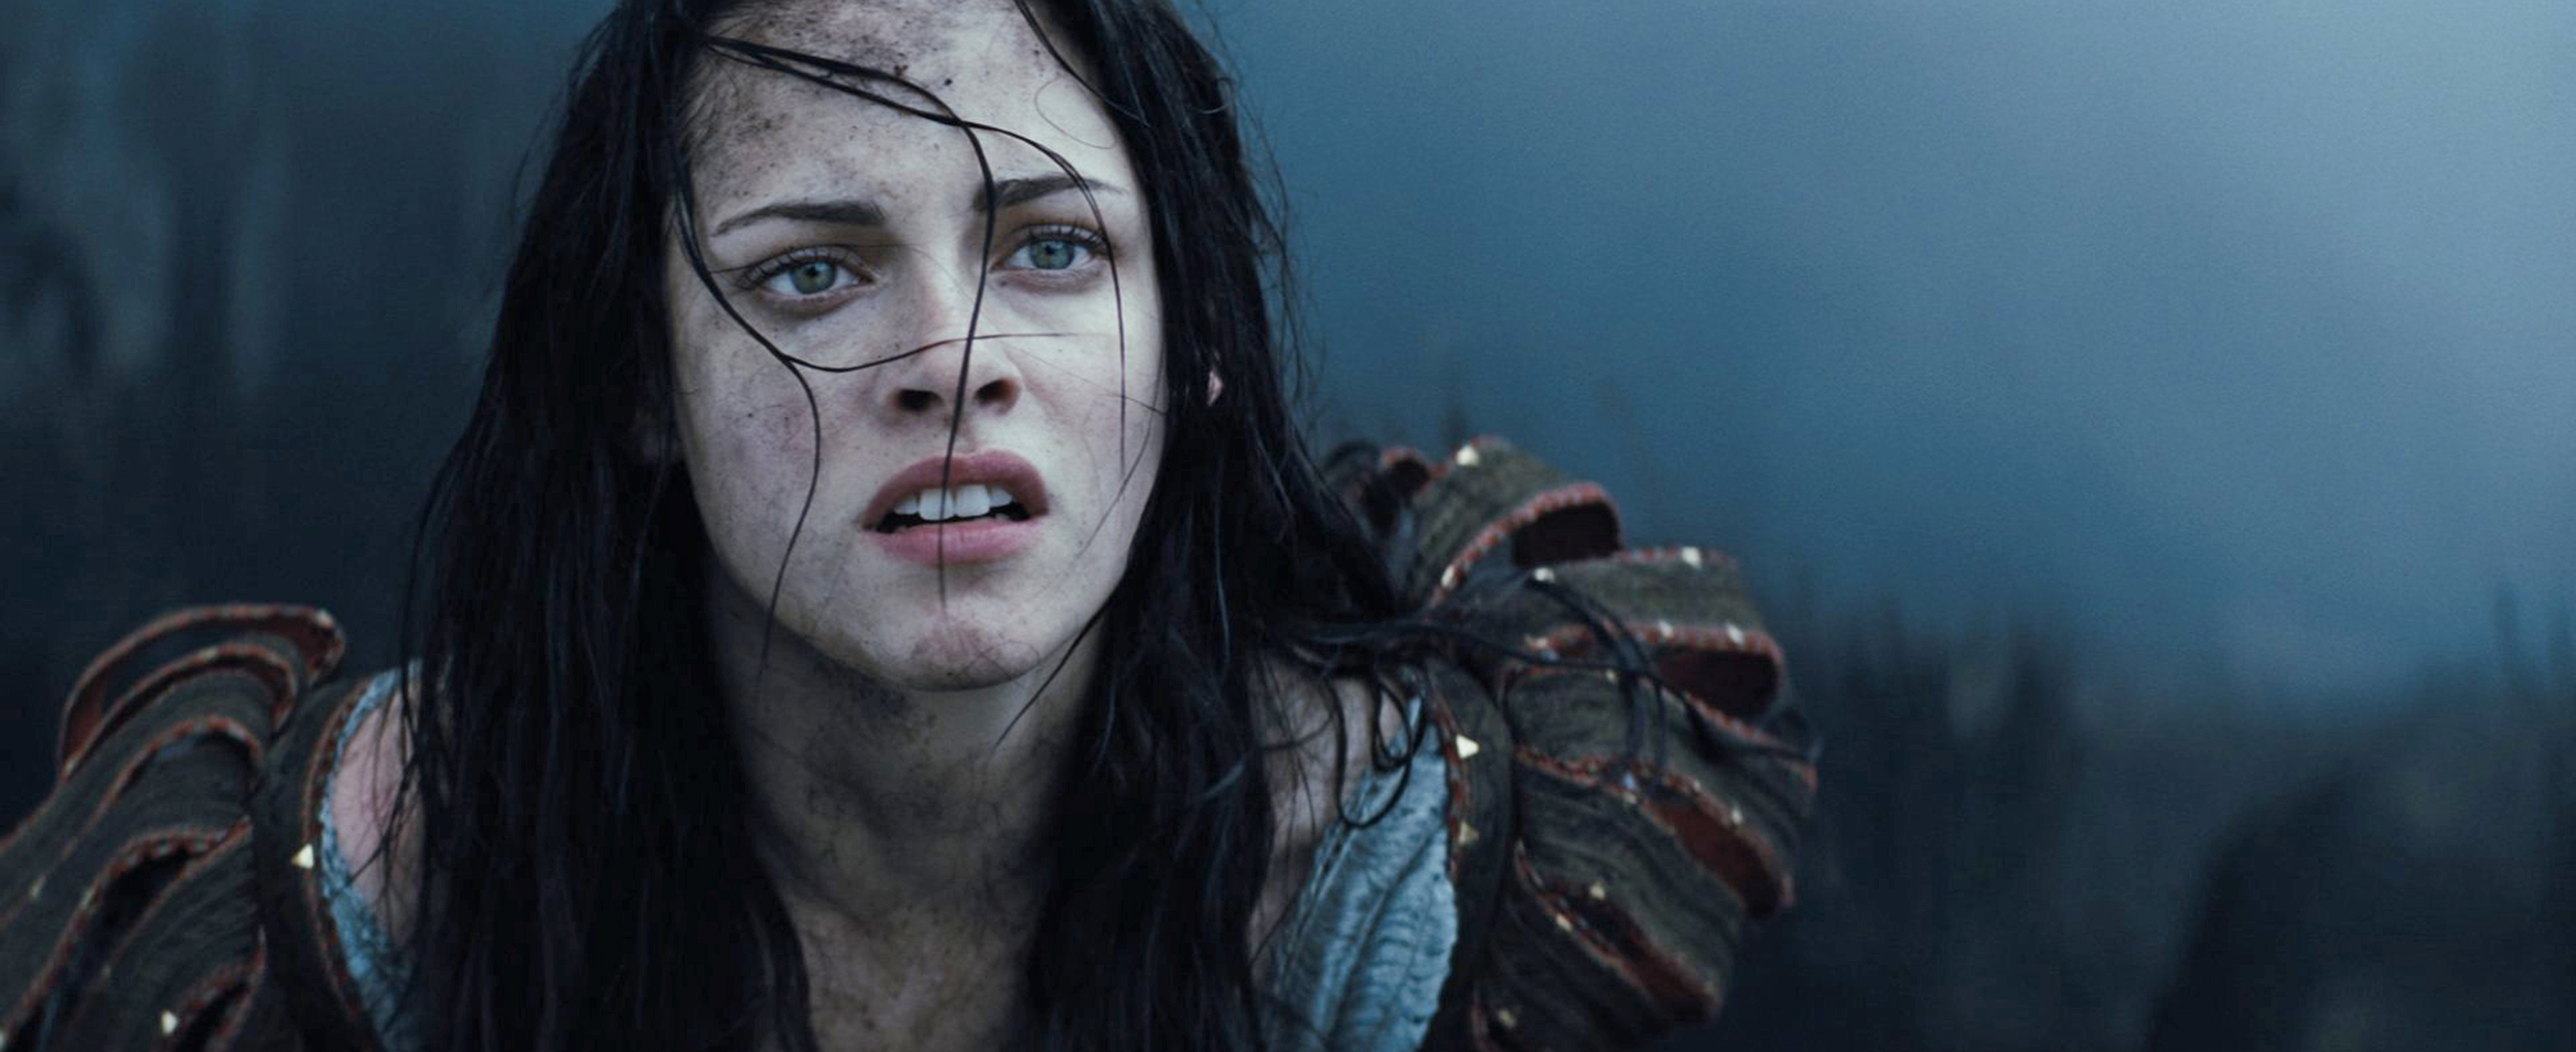 New SWATH Stills – BTS Pictures & Poster